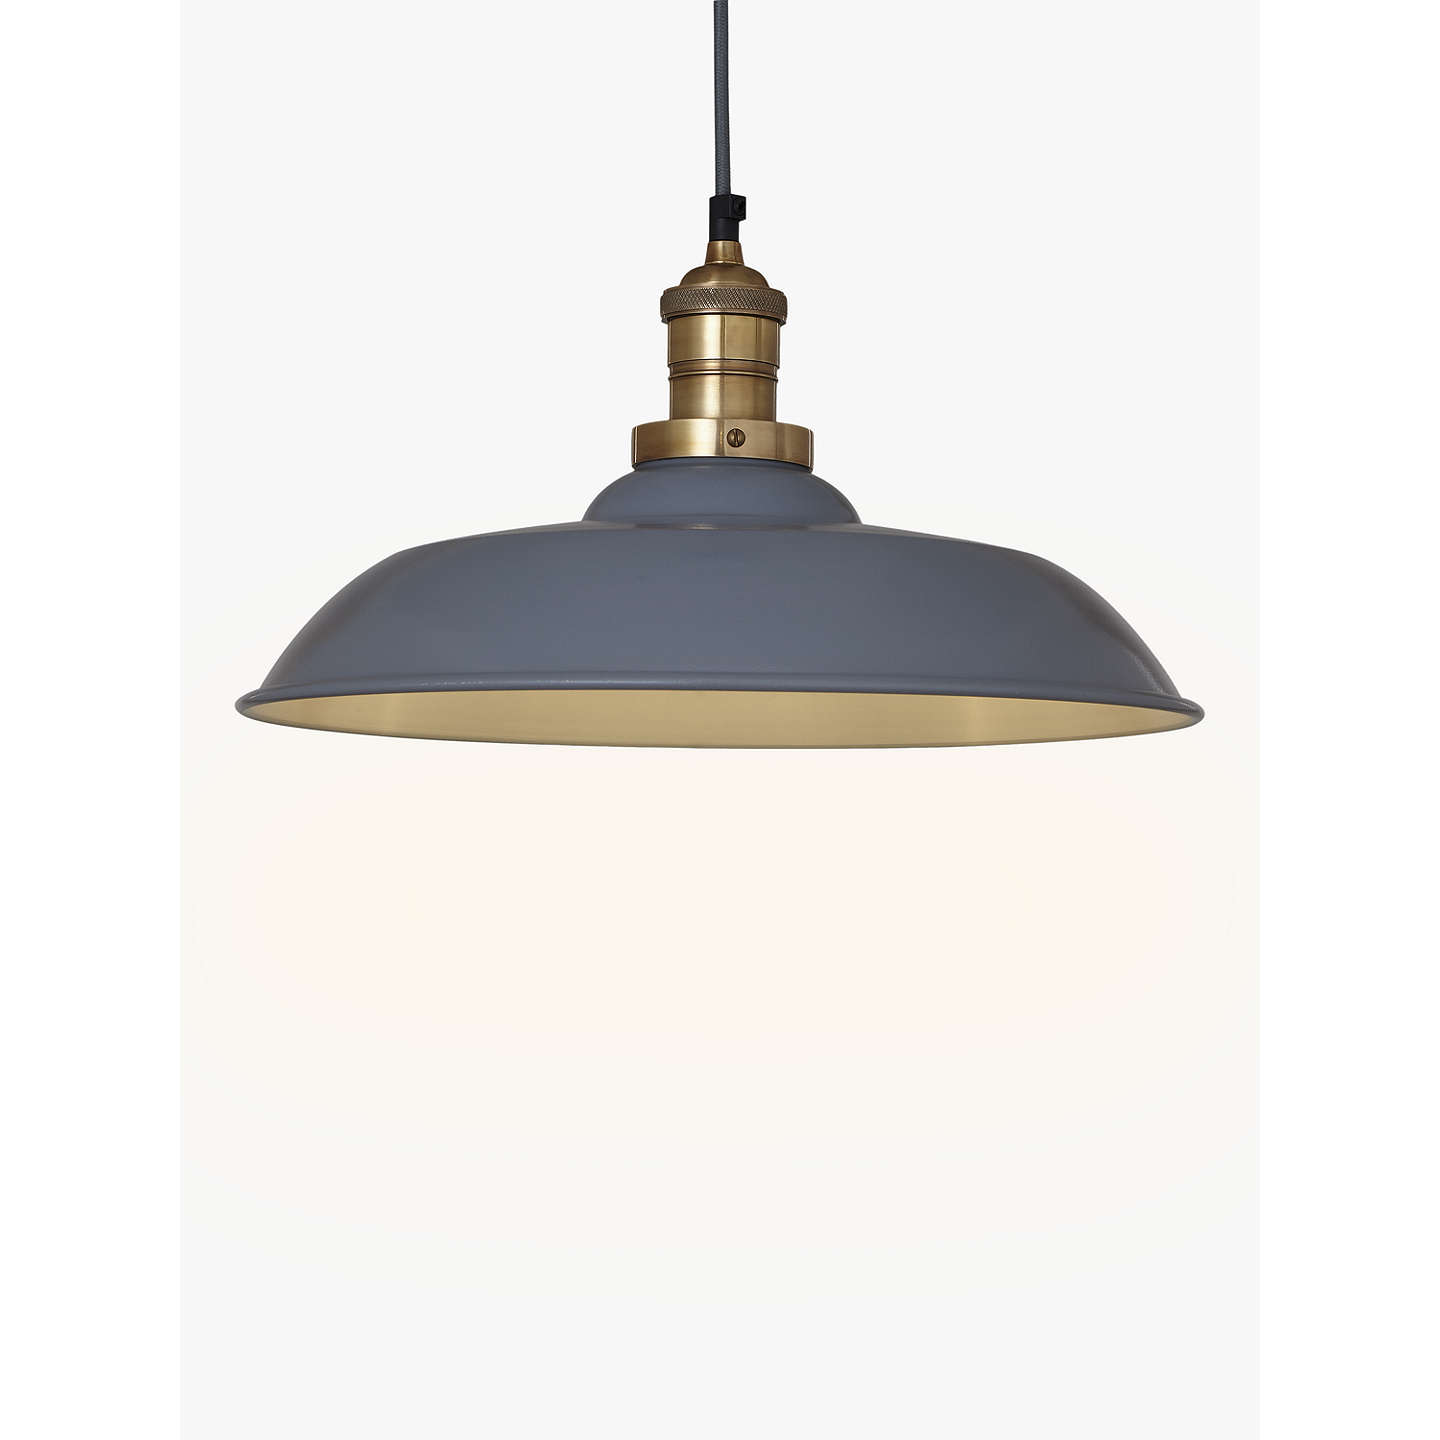 Croft collection clyde brass trim ceiling pendant light at john lewis buycroft collection clyde brass trim ceiling pendant light greybrass online at johnlewis mozeypictures